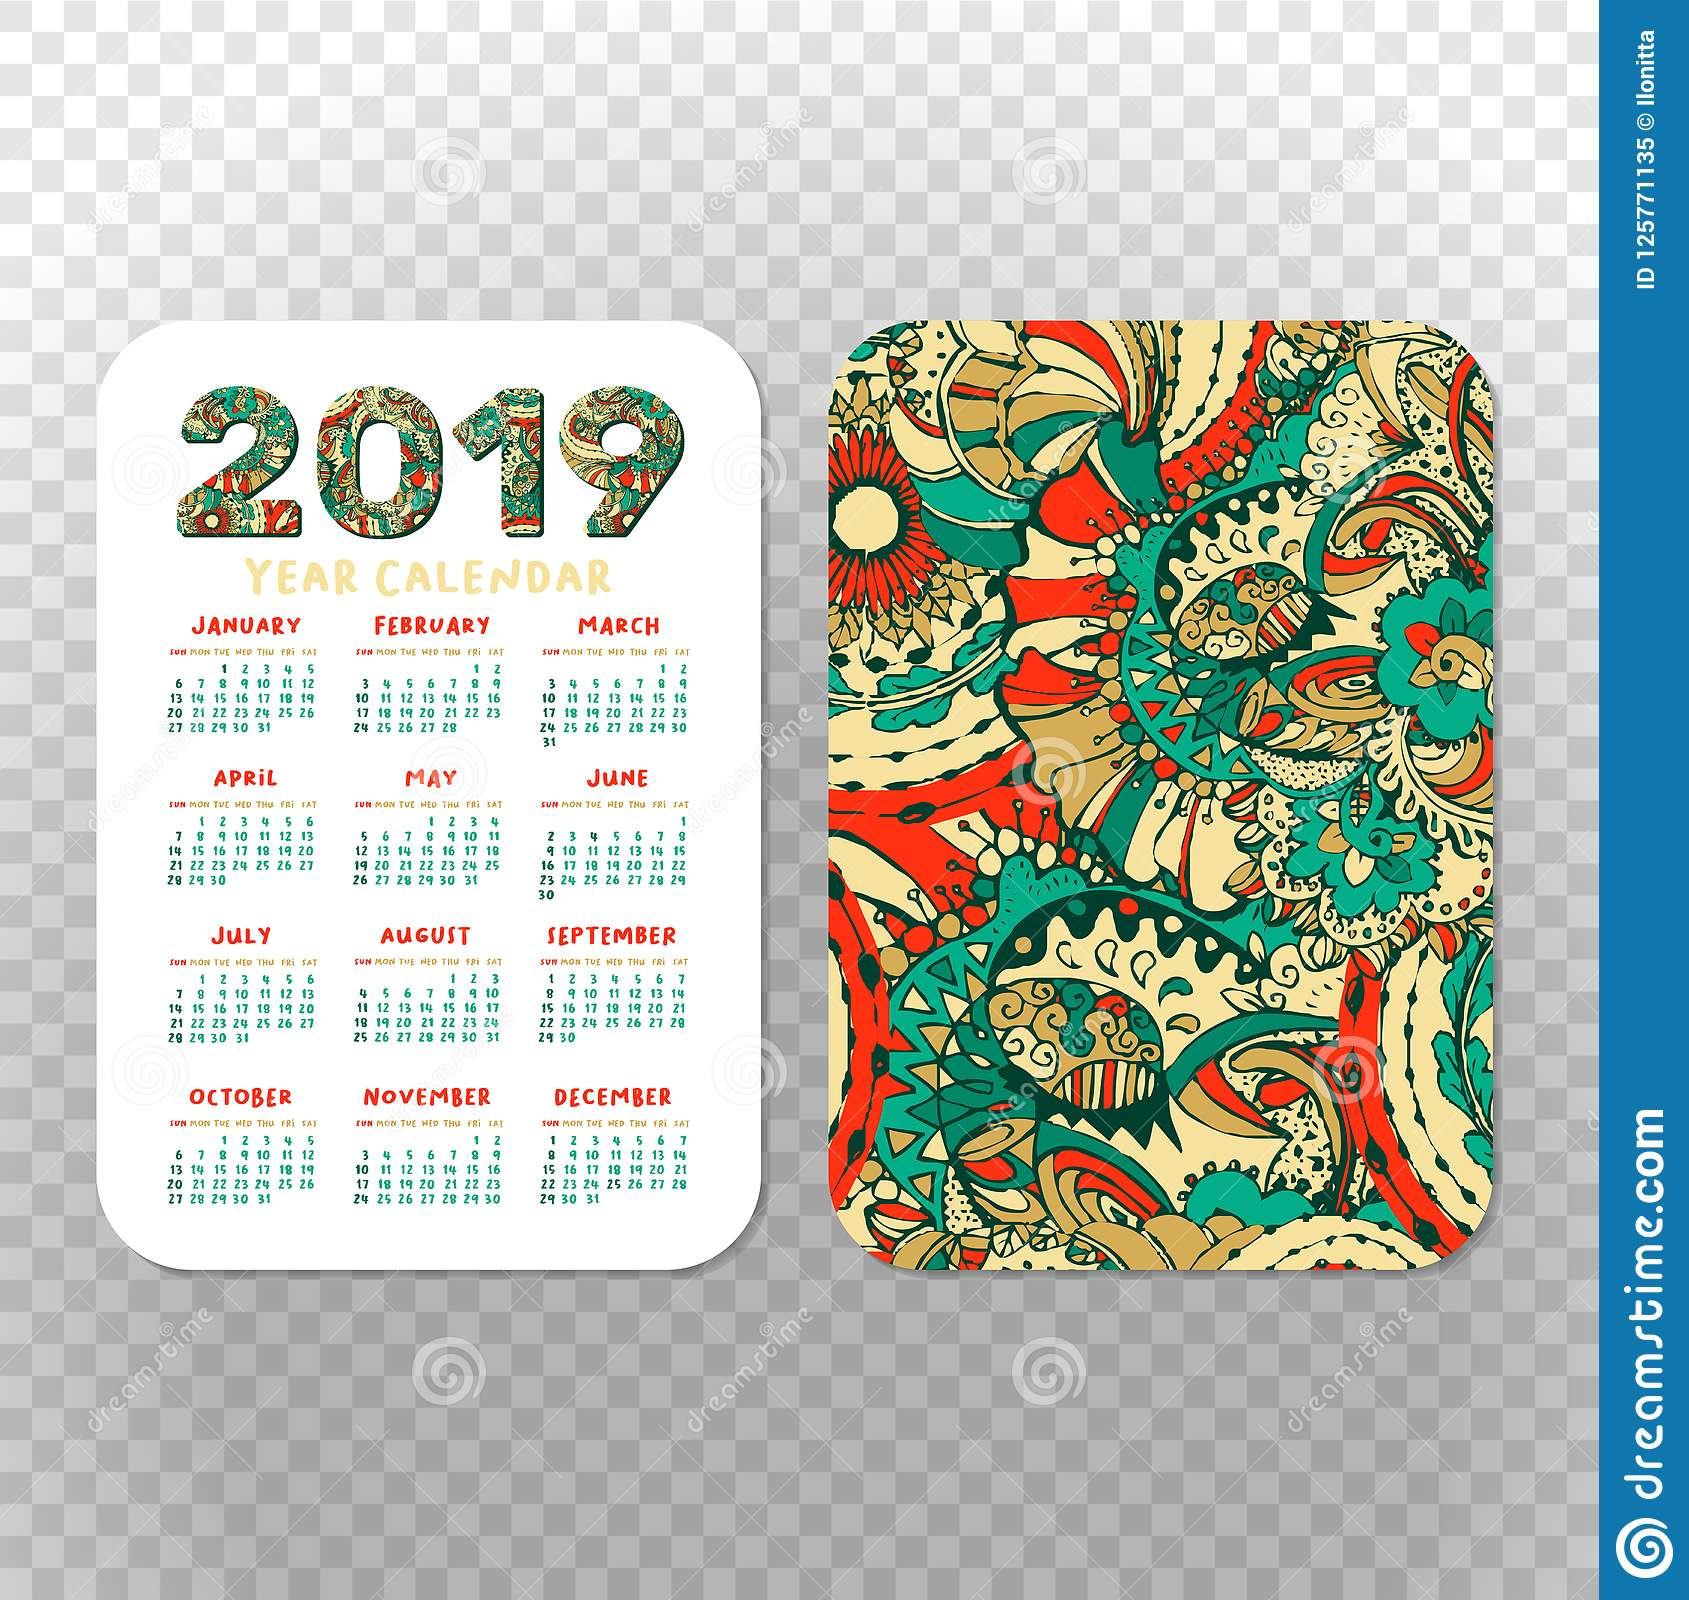 Pocket Calendar Template from thumbs.dreamstime.com